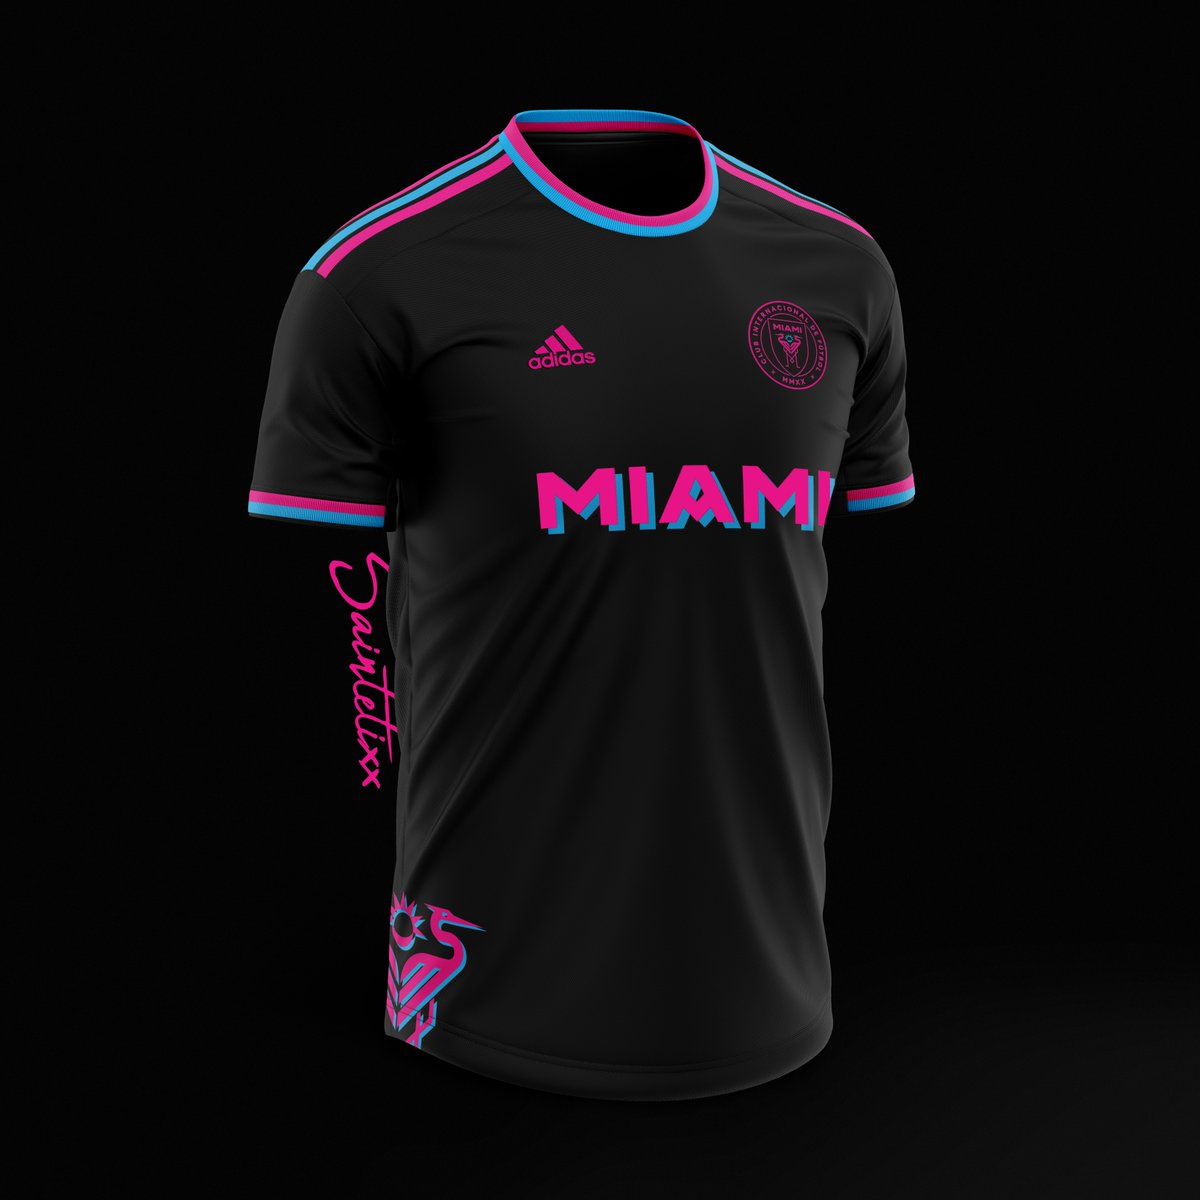 low priced 5b60b 83f93 4 Adidas Inter Miami CF 2020 Concept Kits By Saintetixx ...